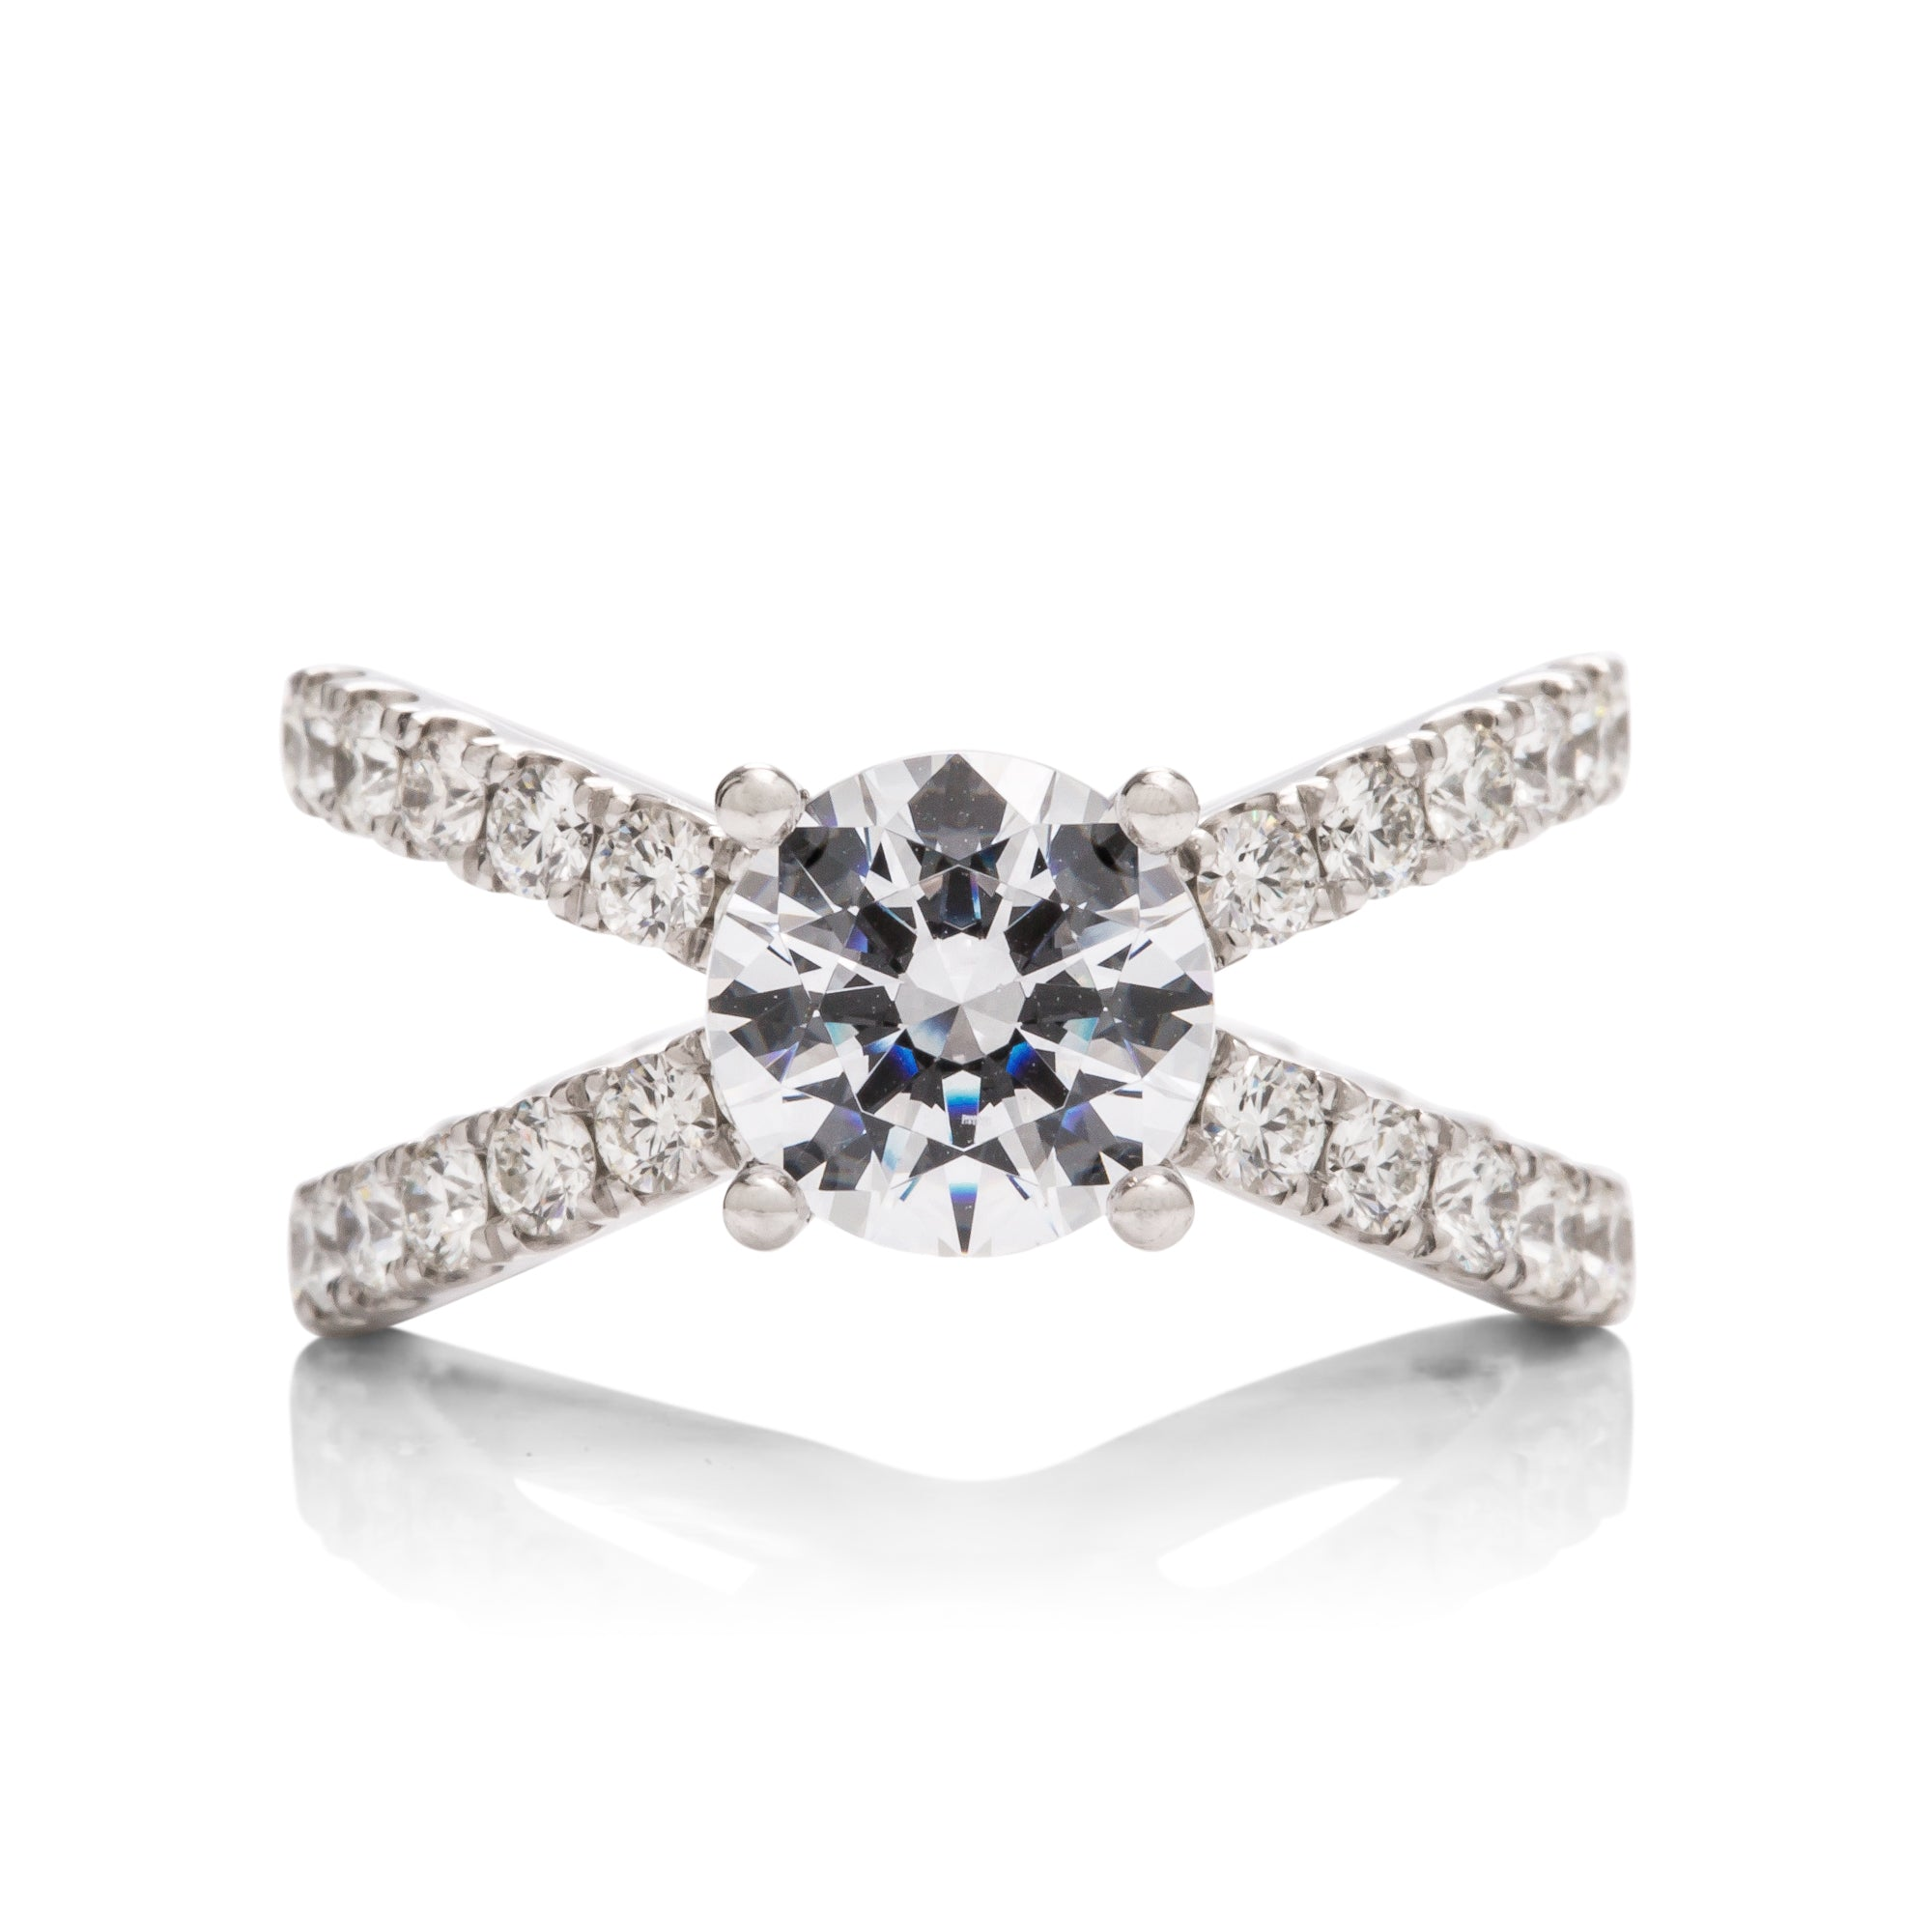 Dual Diamond Band Engagement Ring - Charles Koll Jewellers